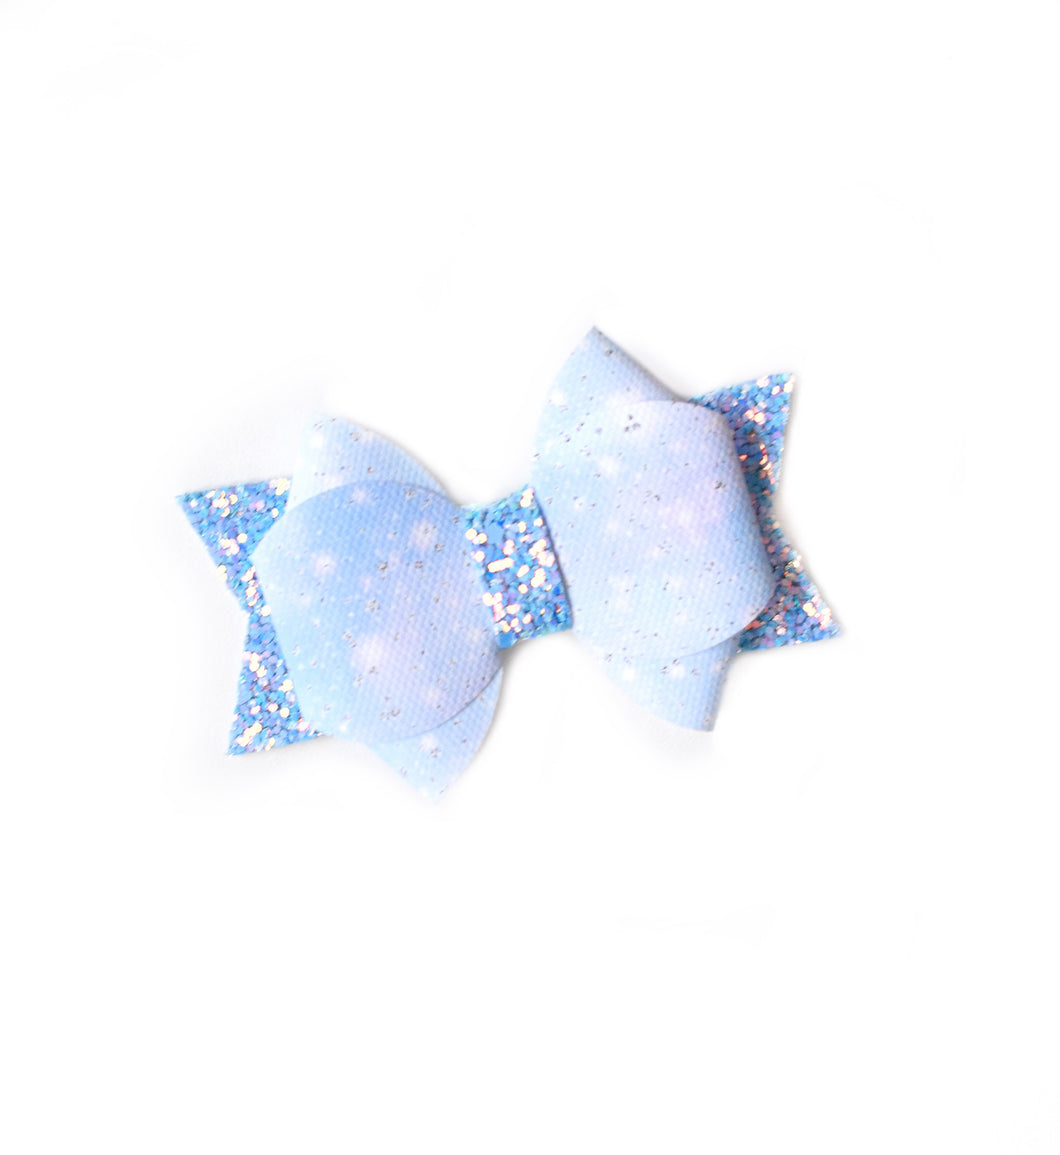 James- Blue Sparkle glitter bow, leatherette bow, fringe clip, butterfly bow, personalised bow, rainbow bow, dolly hair bow, floral bow, shimmer bow, pretty bow , Bow Handmade Hairbow, handmade hair accessories, Sweet Adalyn Sweet Adalyn